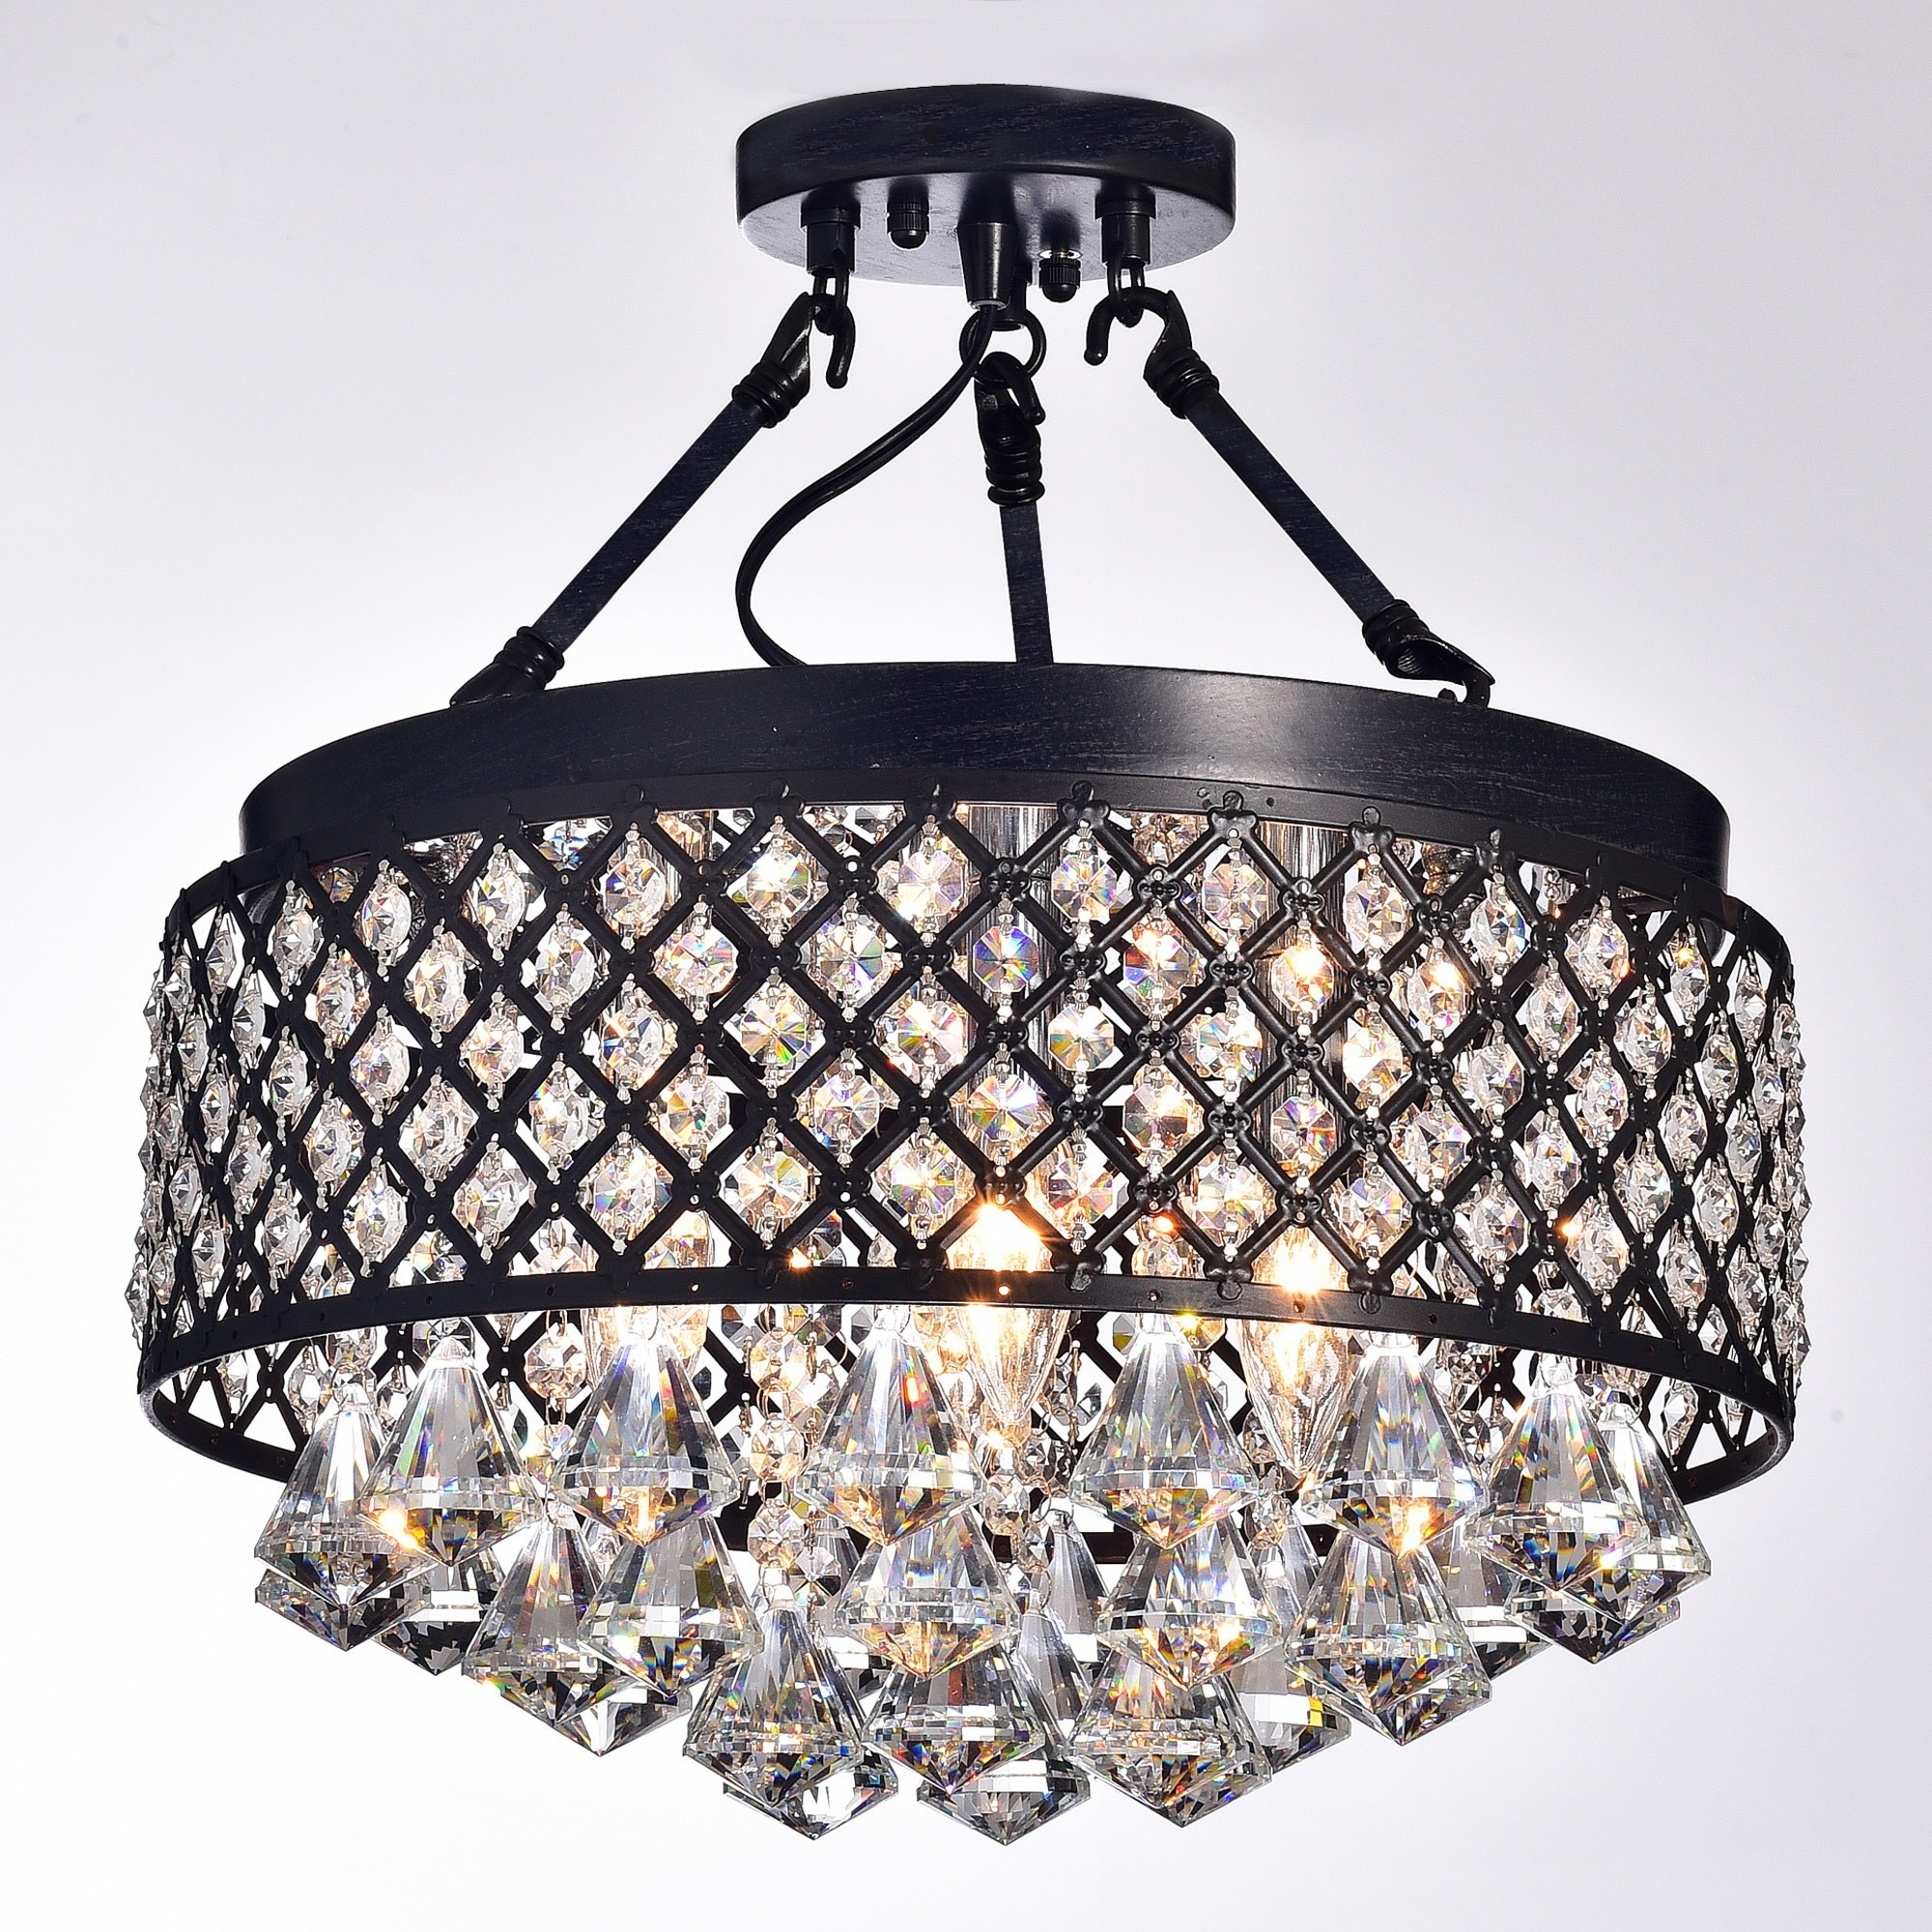 Silver Orchid Taylor 4 light Antique Black Semi Flush Mount